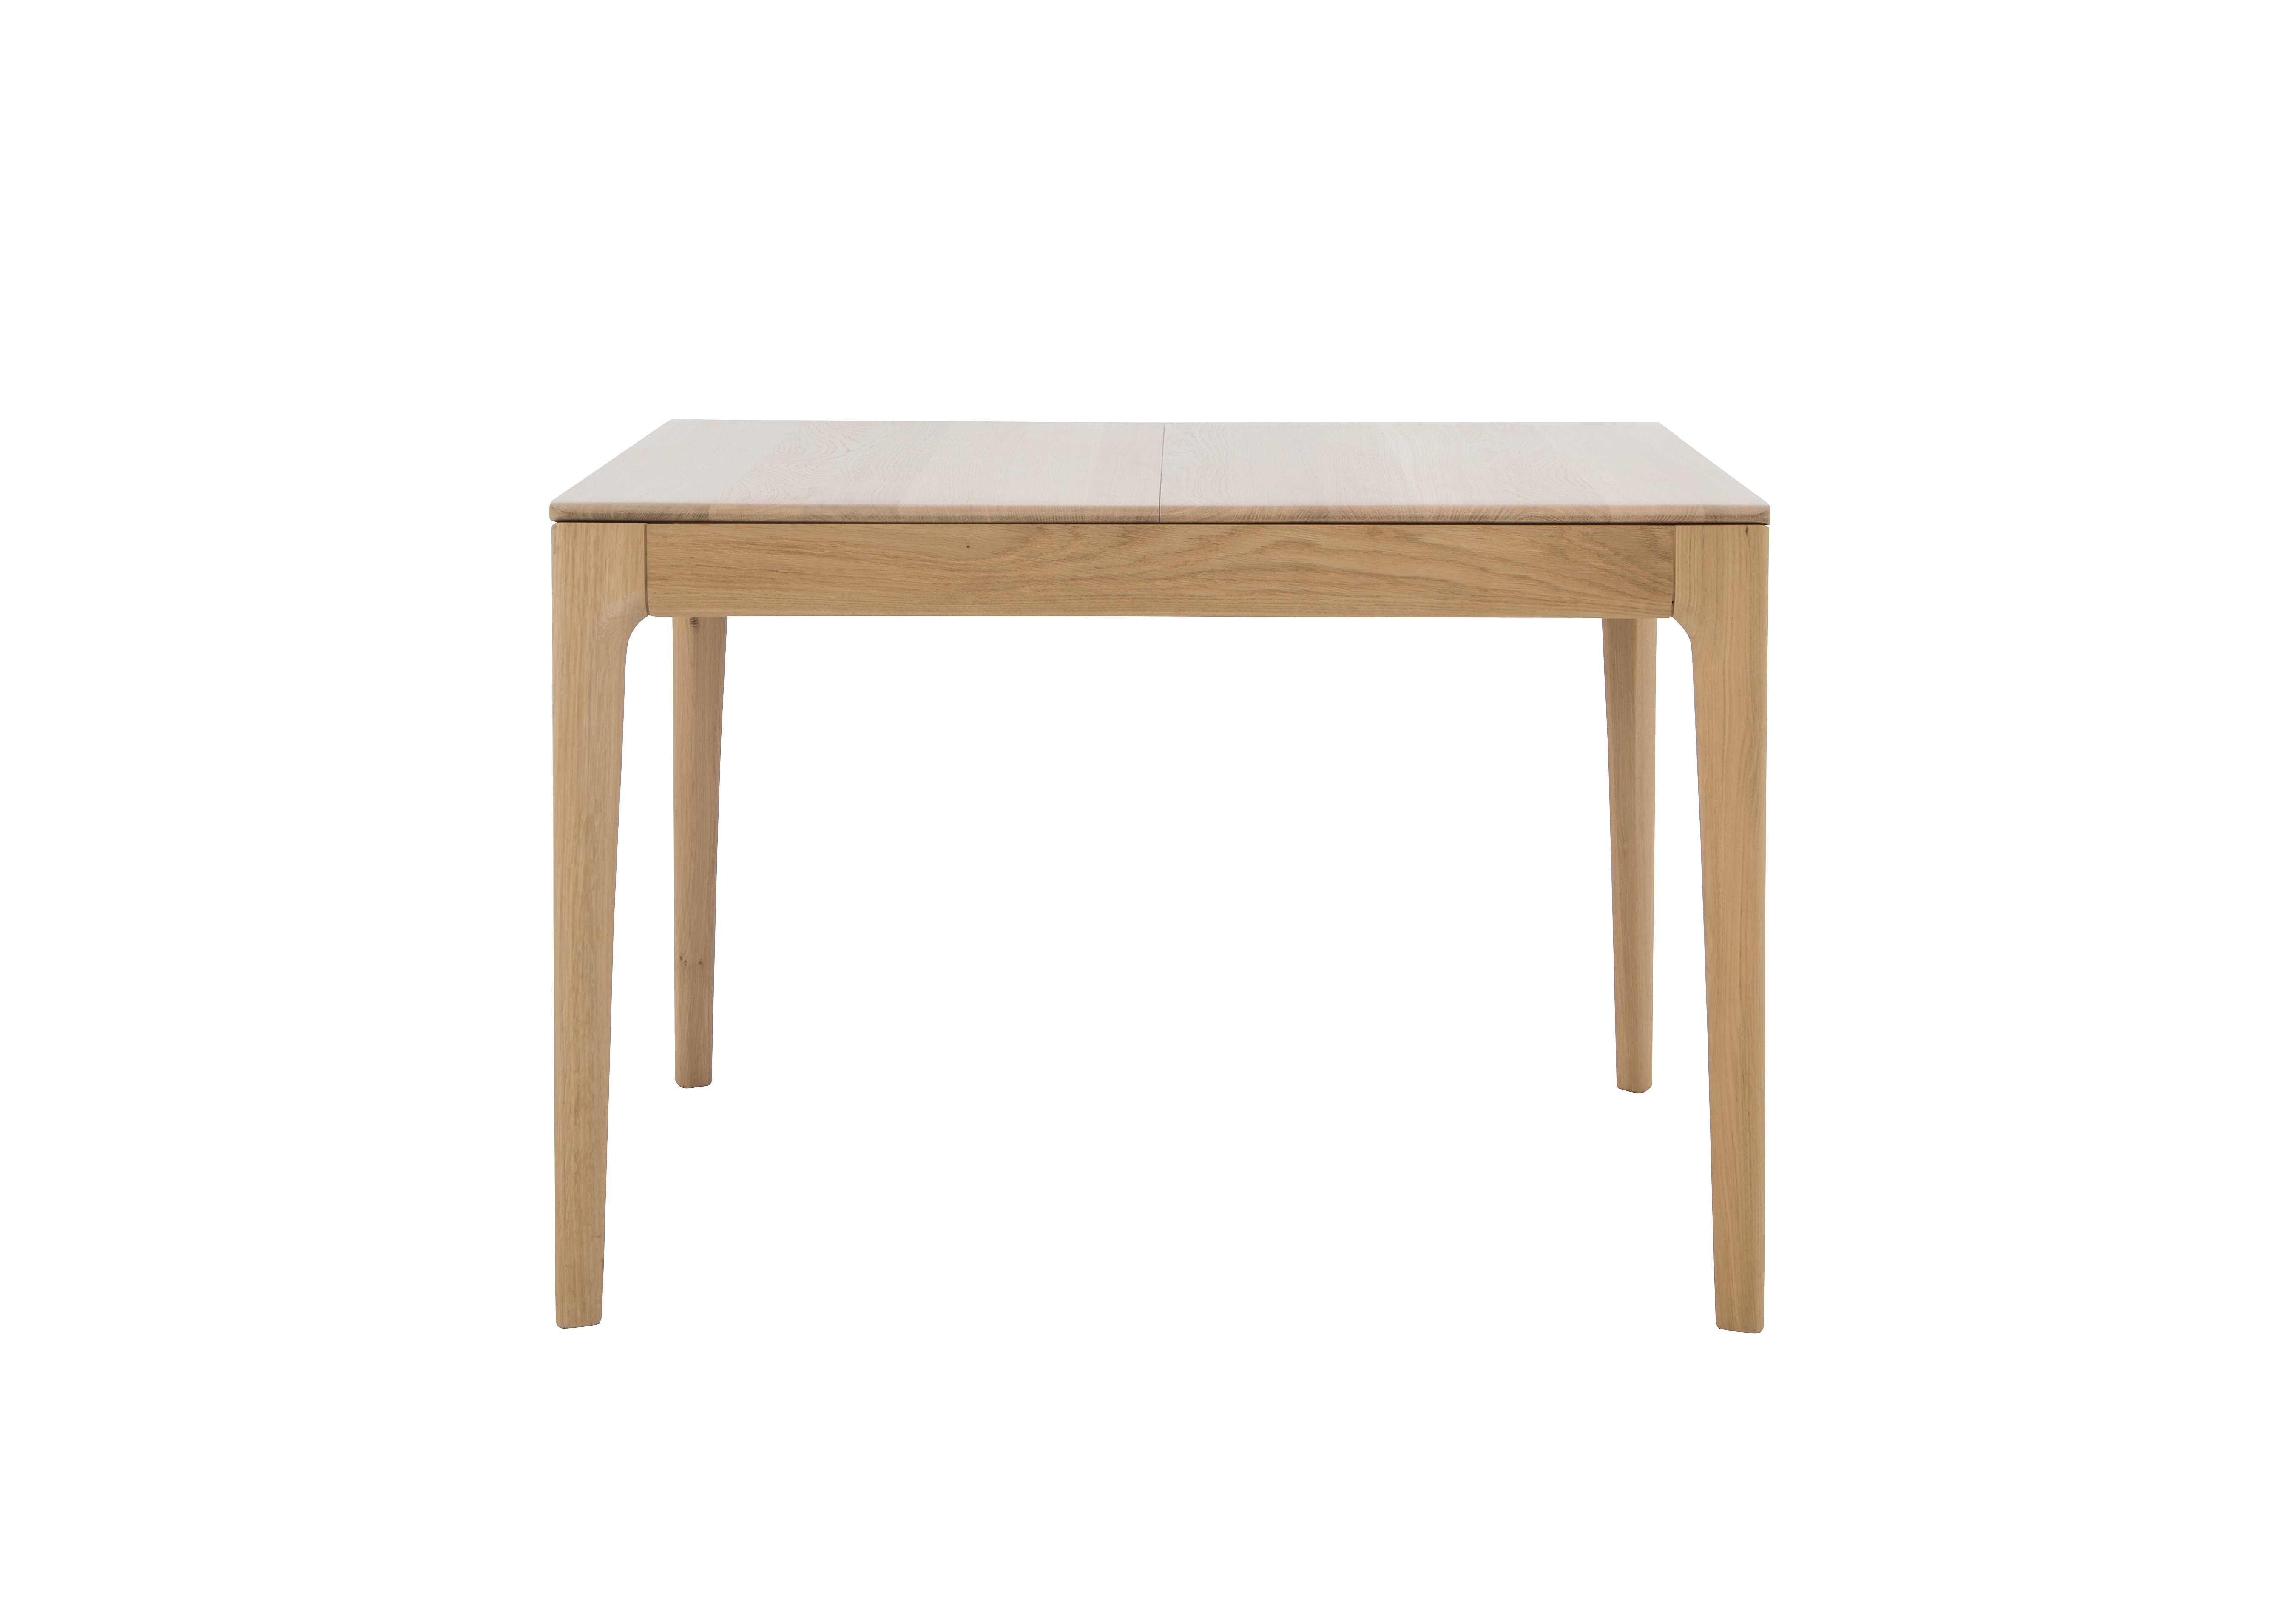 Luxury Small Dining Table that Extends Light of Dining Room : PRODRONA2640CM 001romanasmall extending dining tablezoomamph1623ampw2304 from www.lightofdiningroom.com size 2304 x 1623 jpeg 140kB